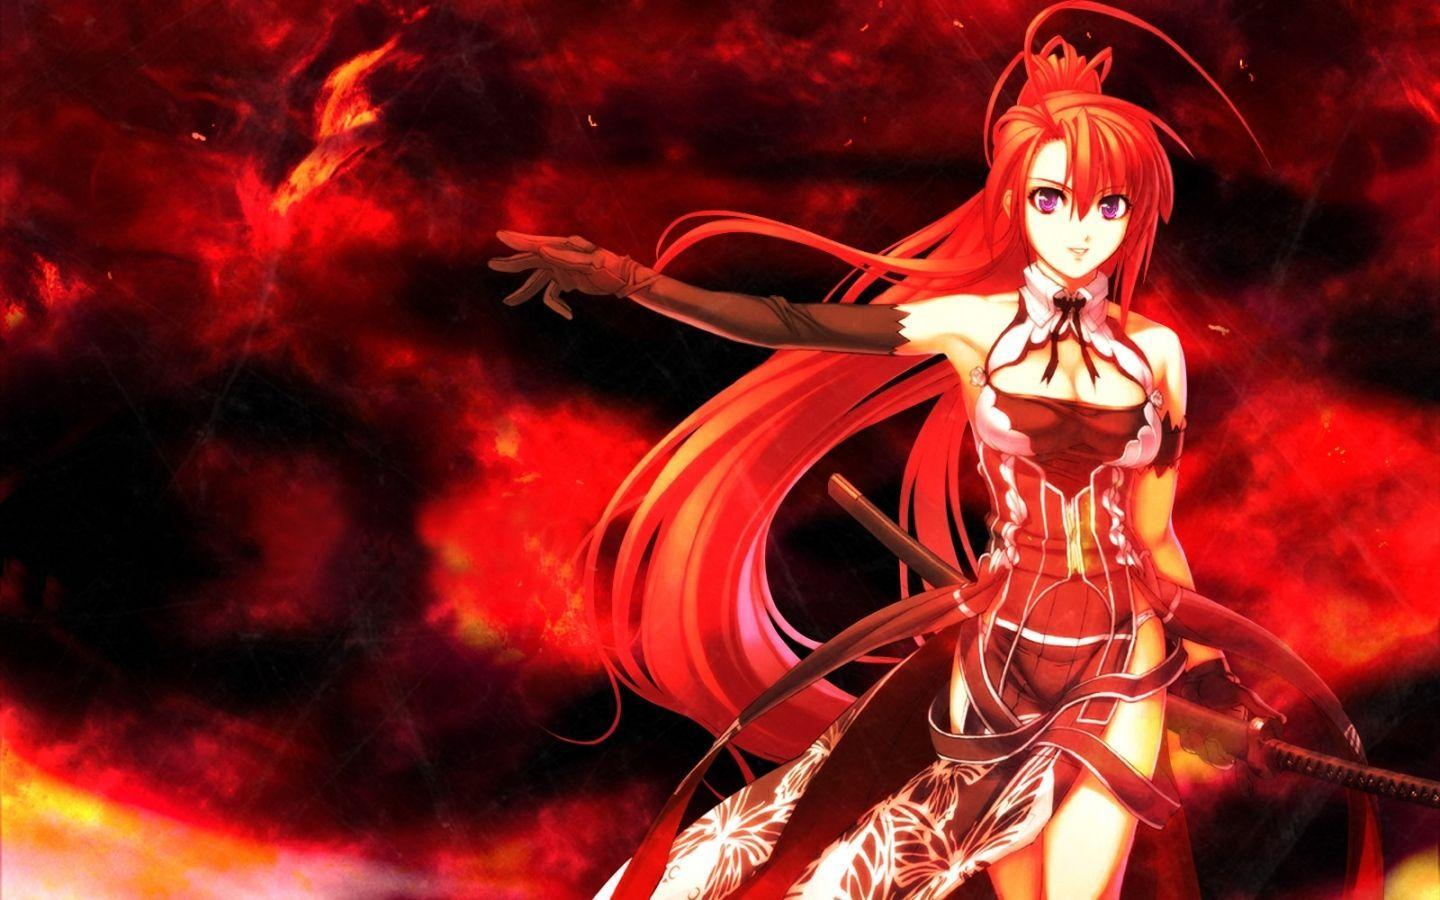 Download wallpaper x anime girl red hair sword red haired